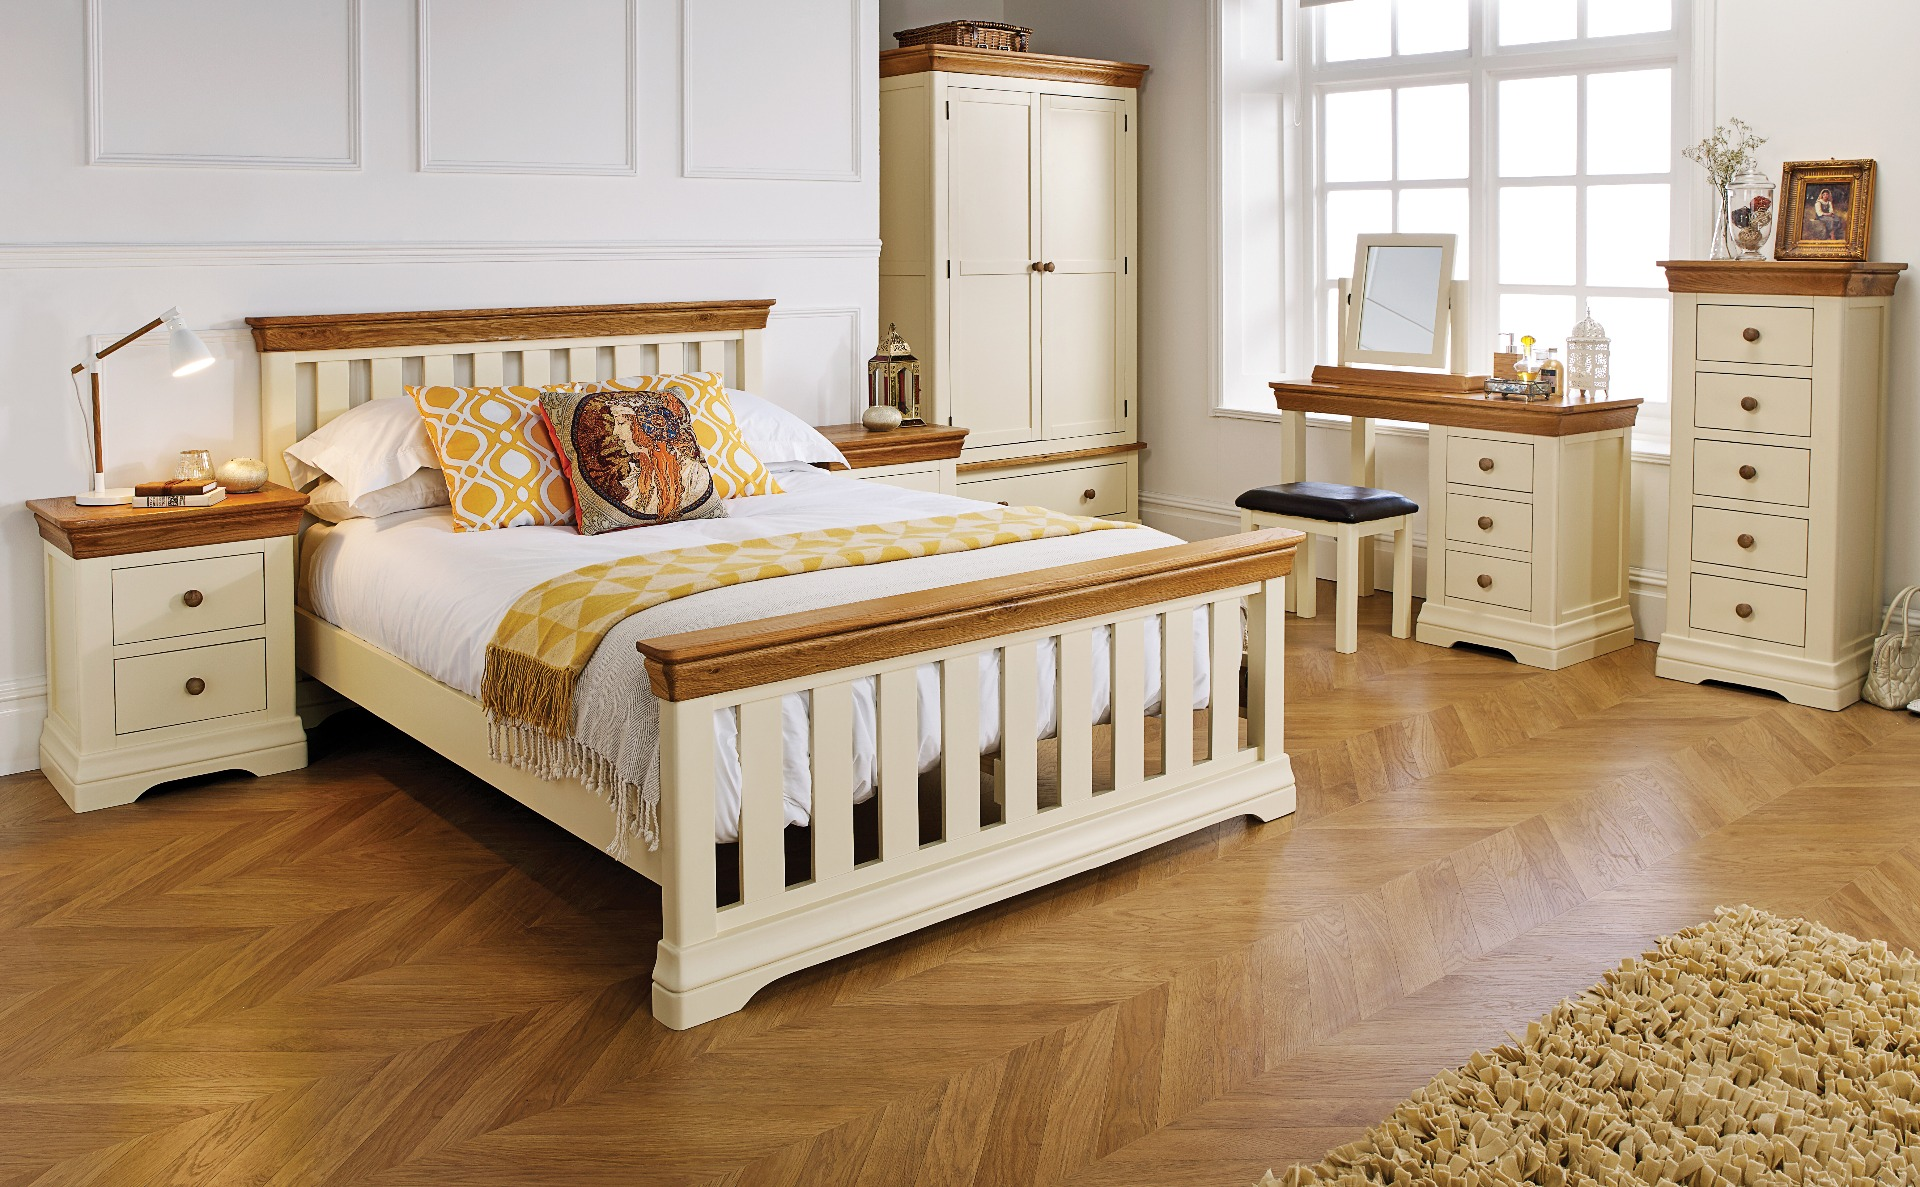 Farmhouse Country Oak Cream Painted 5 Foot King Size Bed